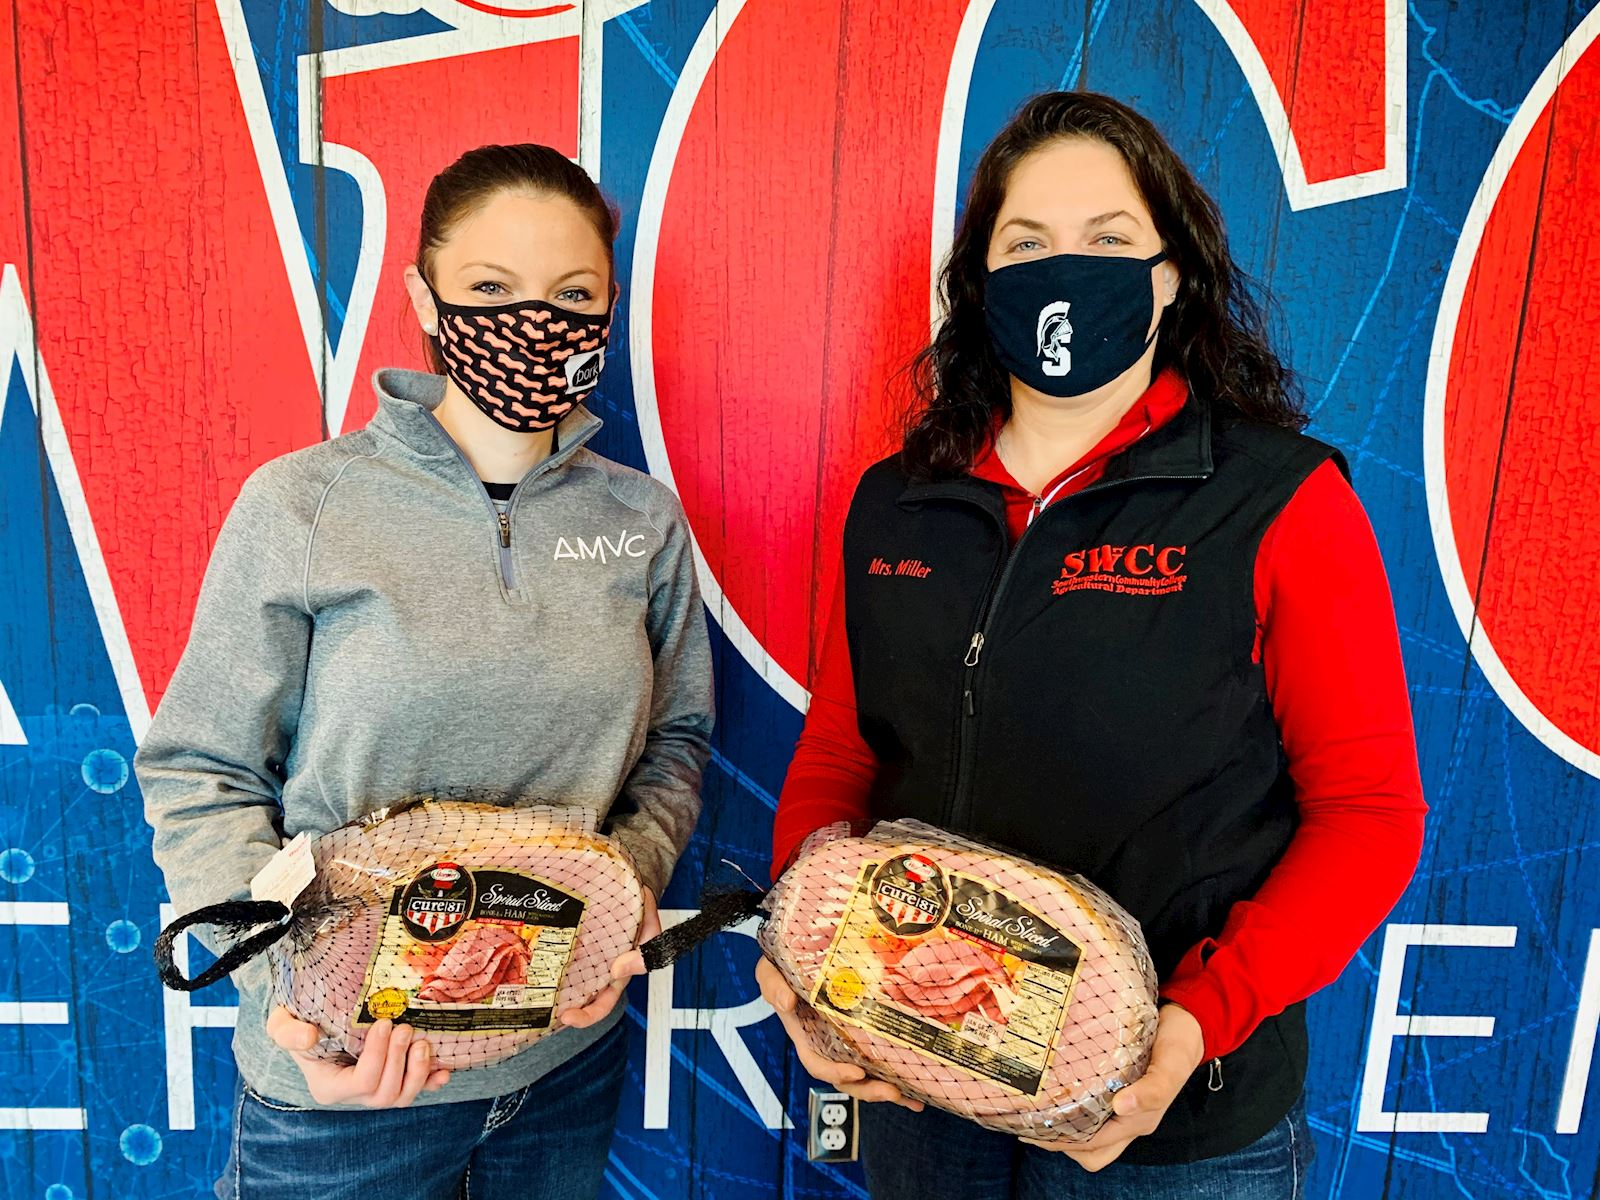 SWCC instructor receives hams